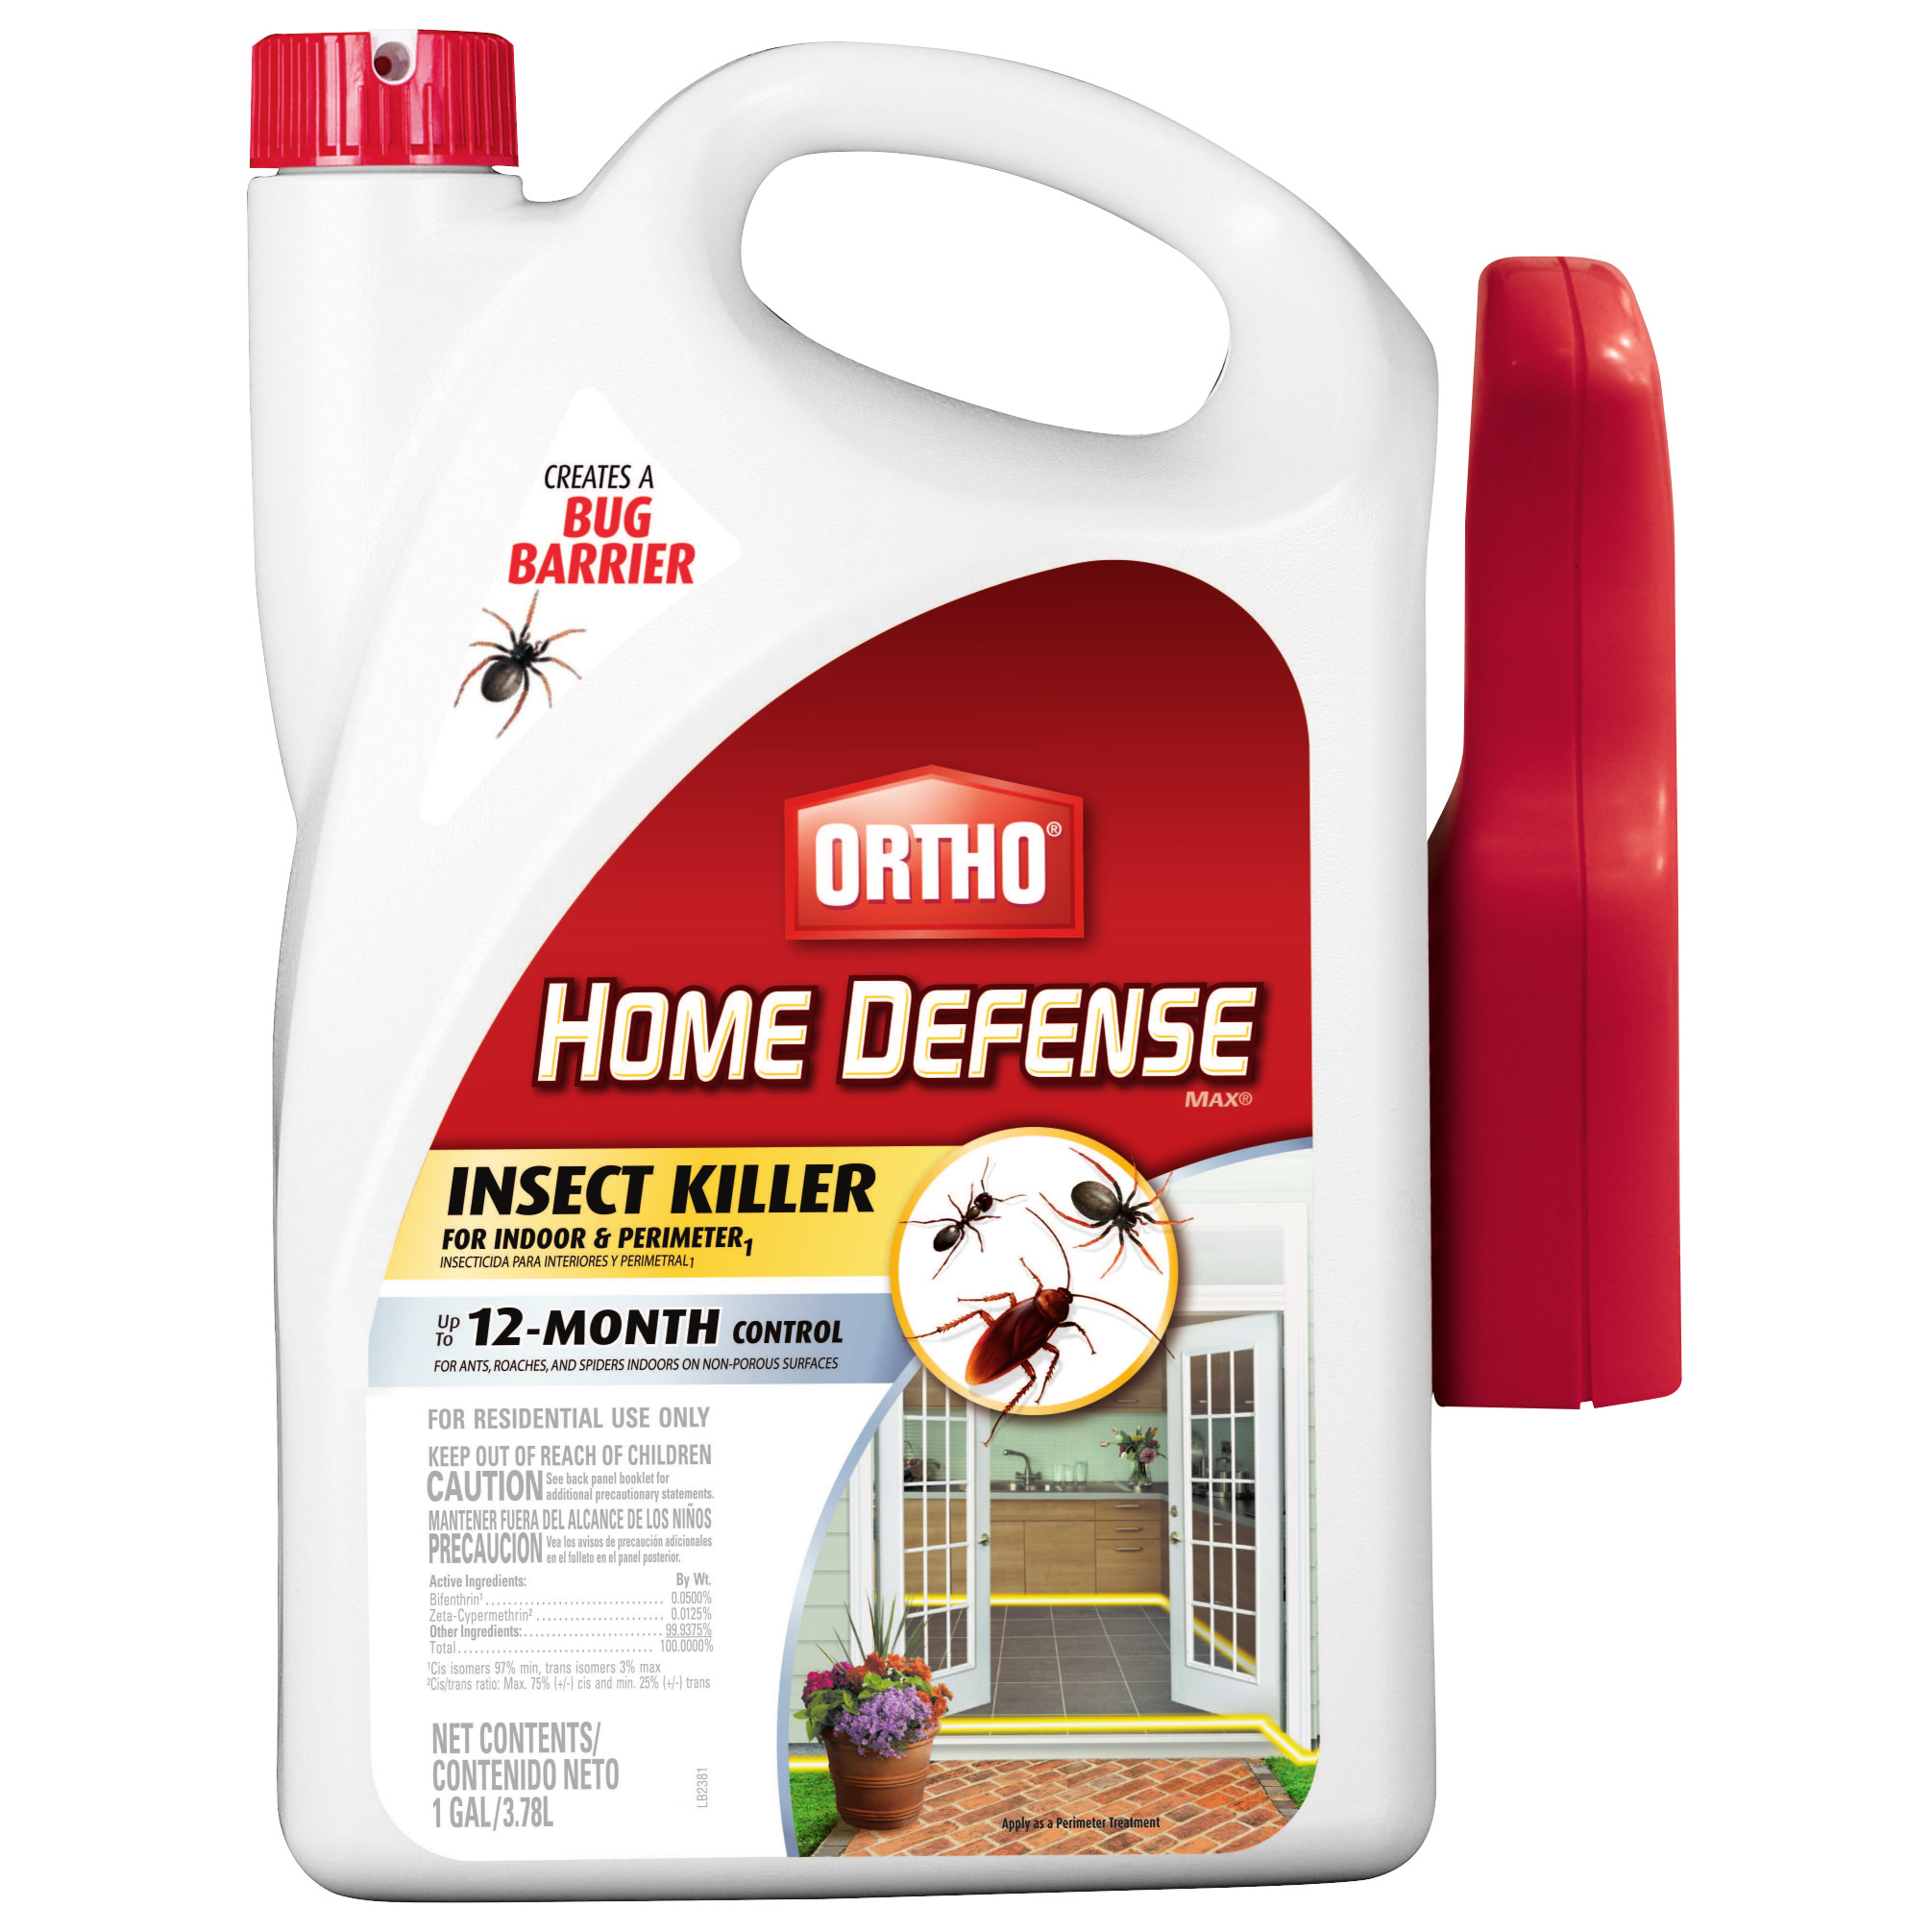 Ortho Home Defense MAX Insect Killer for Indoor & Perimeter1 Ready-To-Use Trigger 1 gal